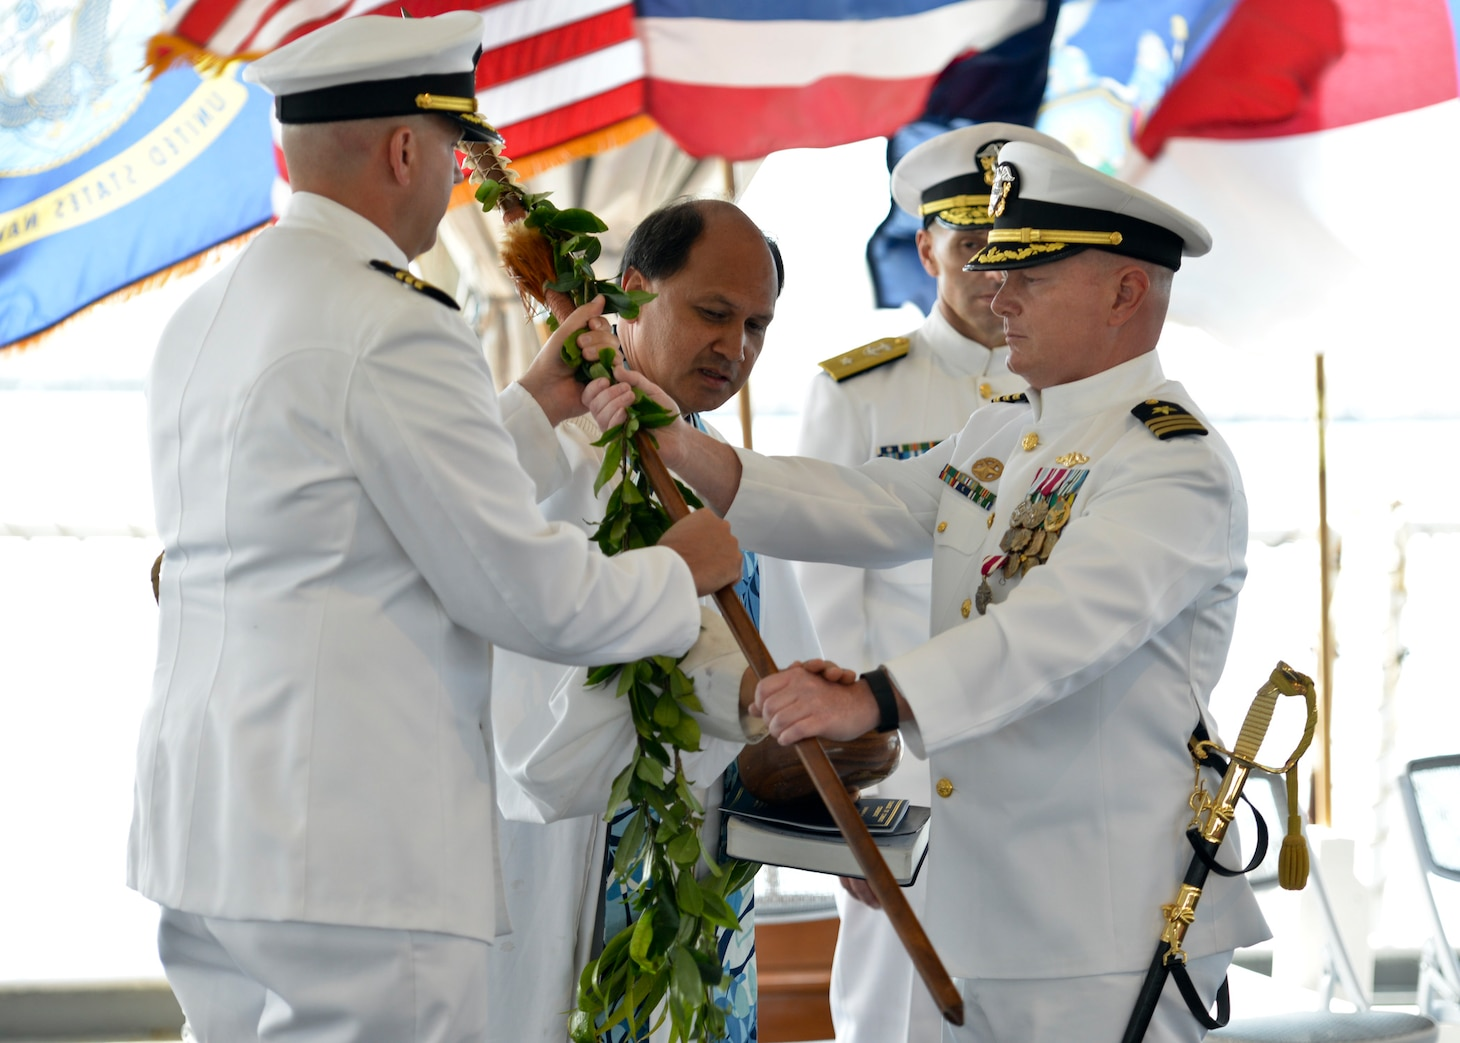 160330-N-LY160-308